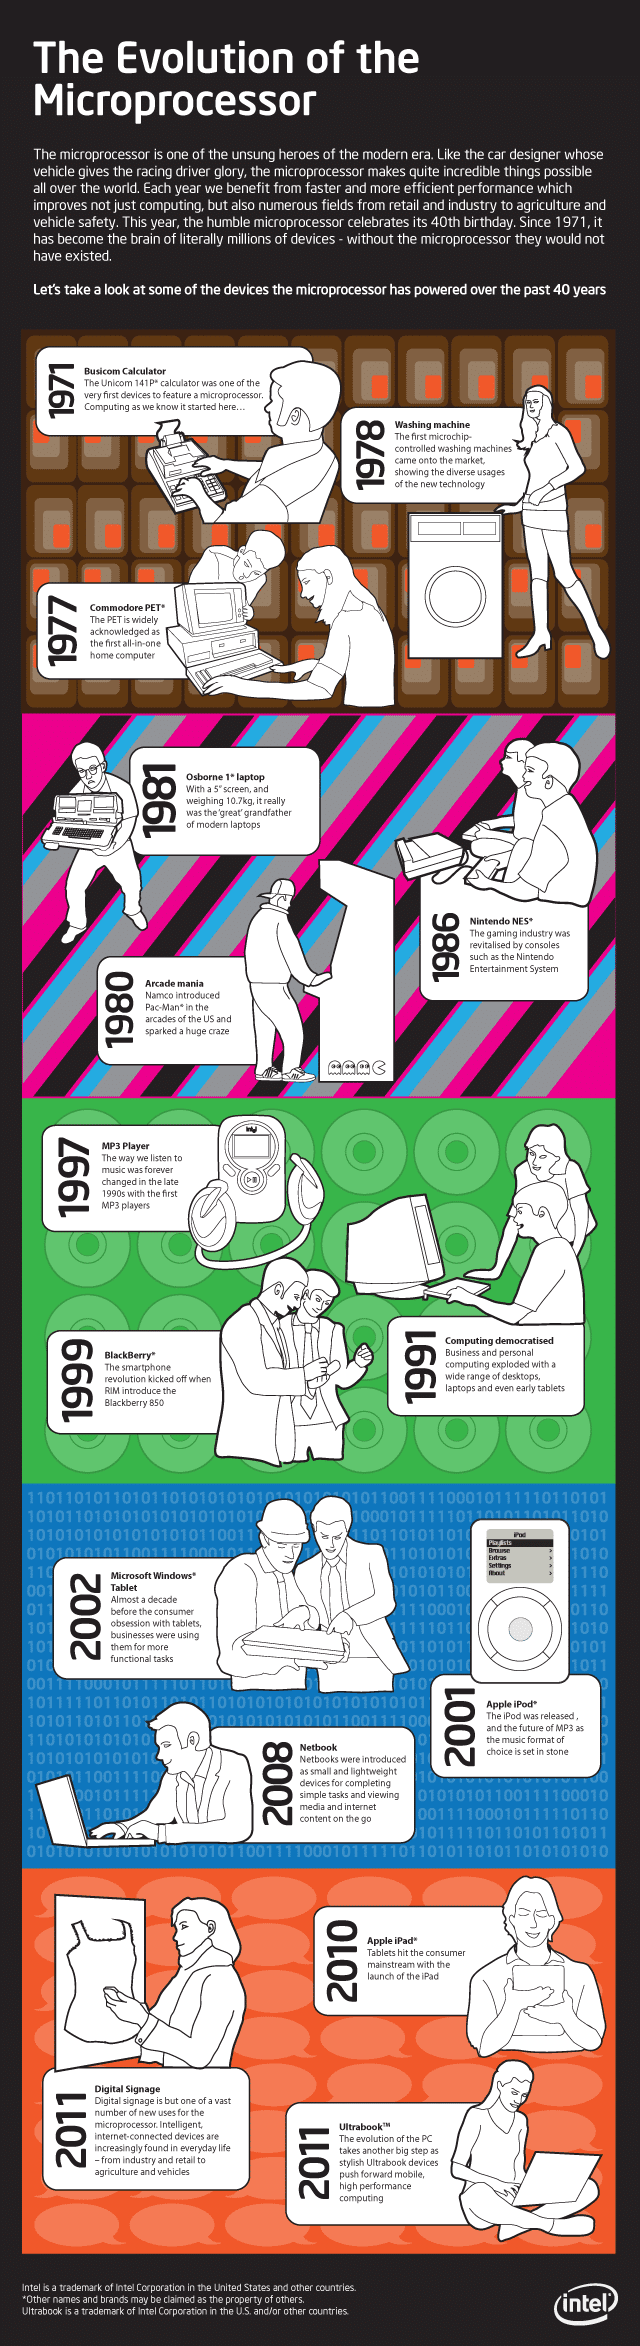 The Evolution Of The Microprocessor [Infographic]